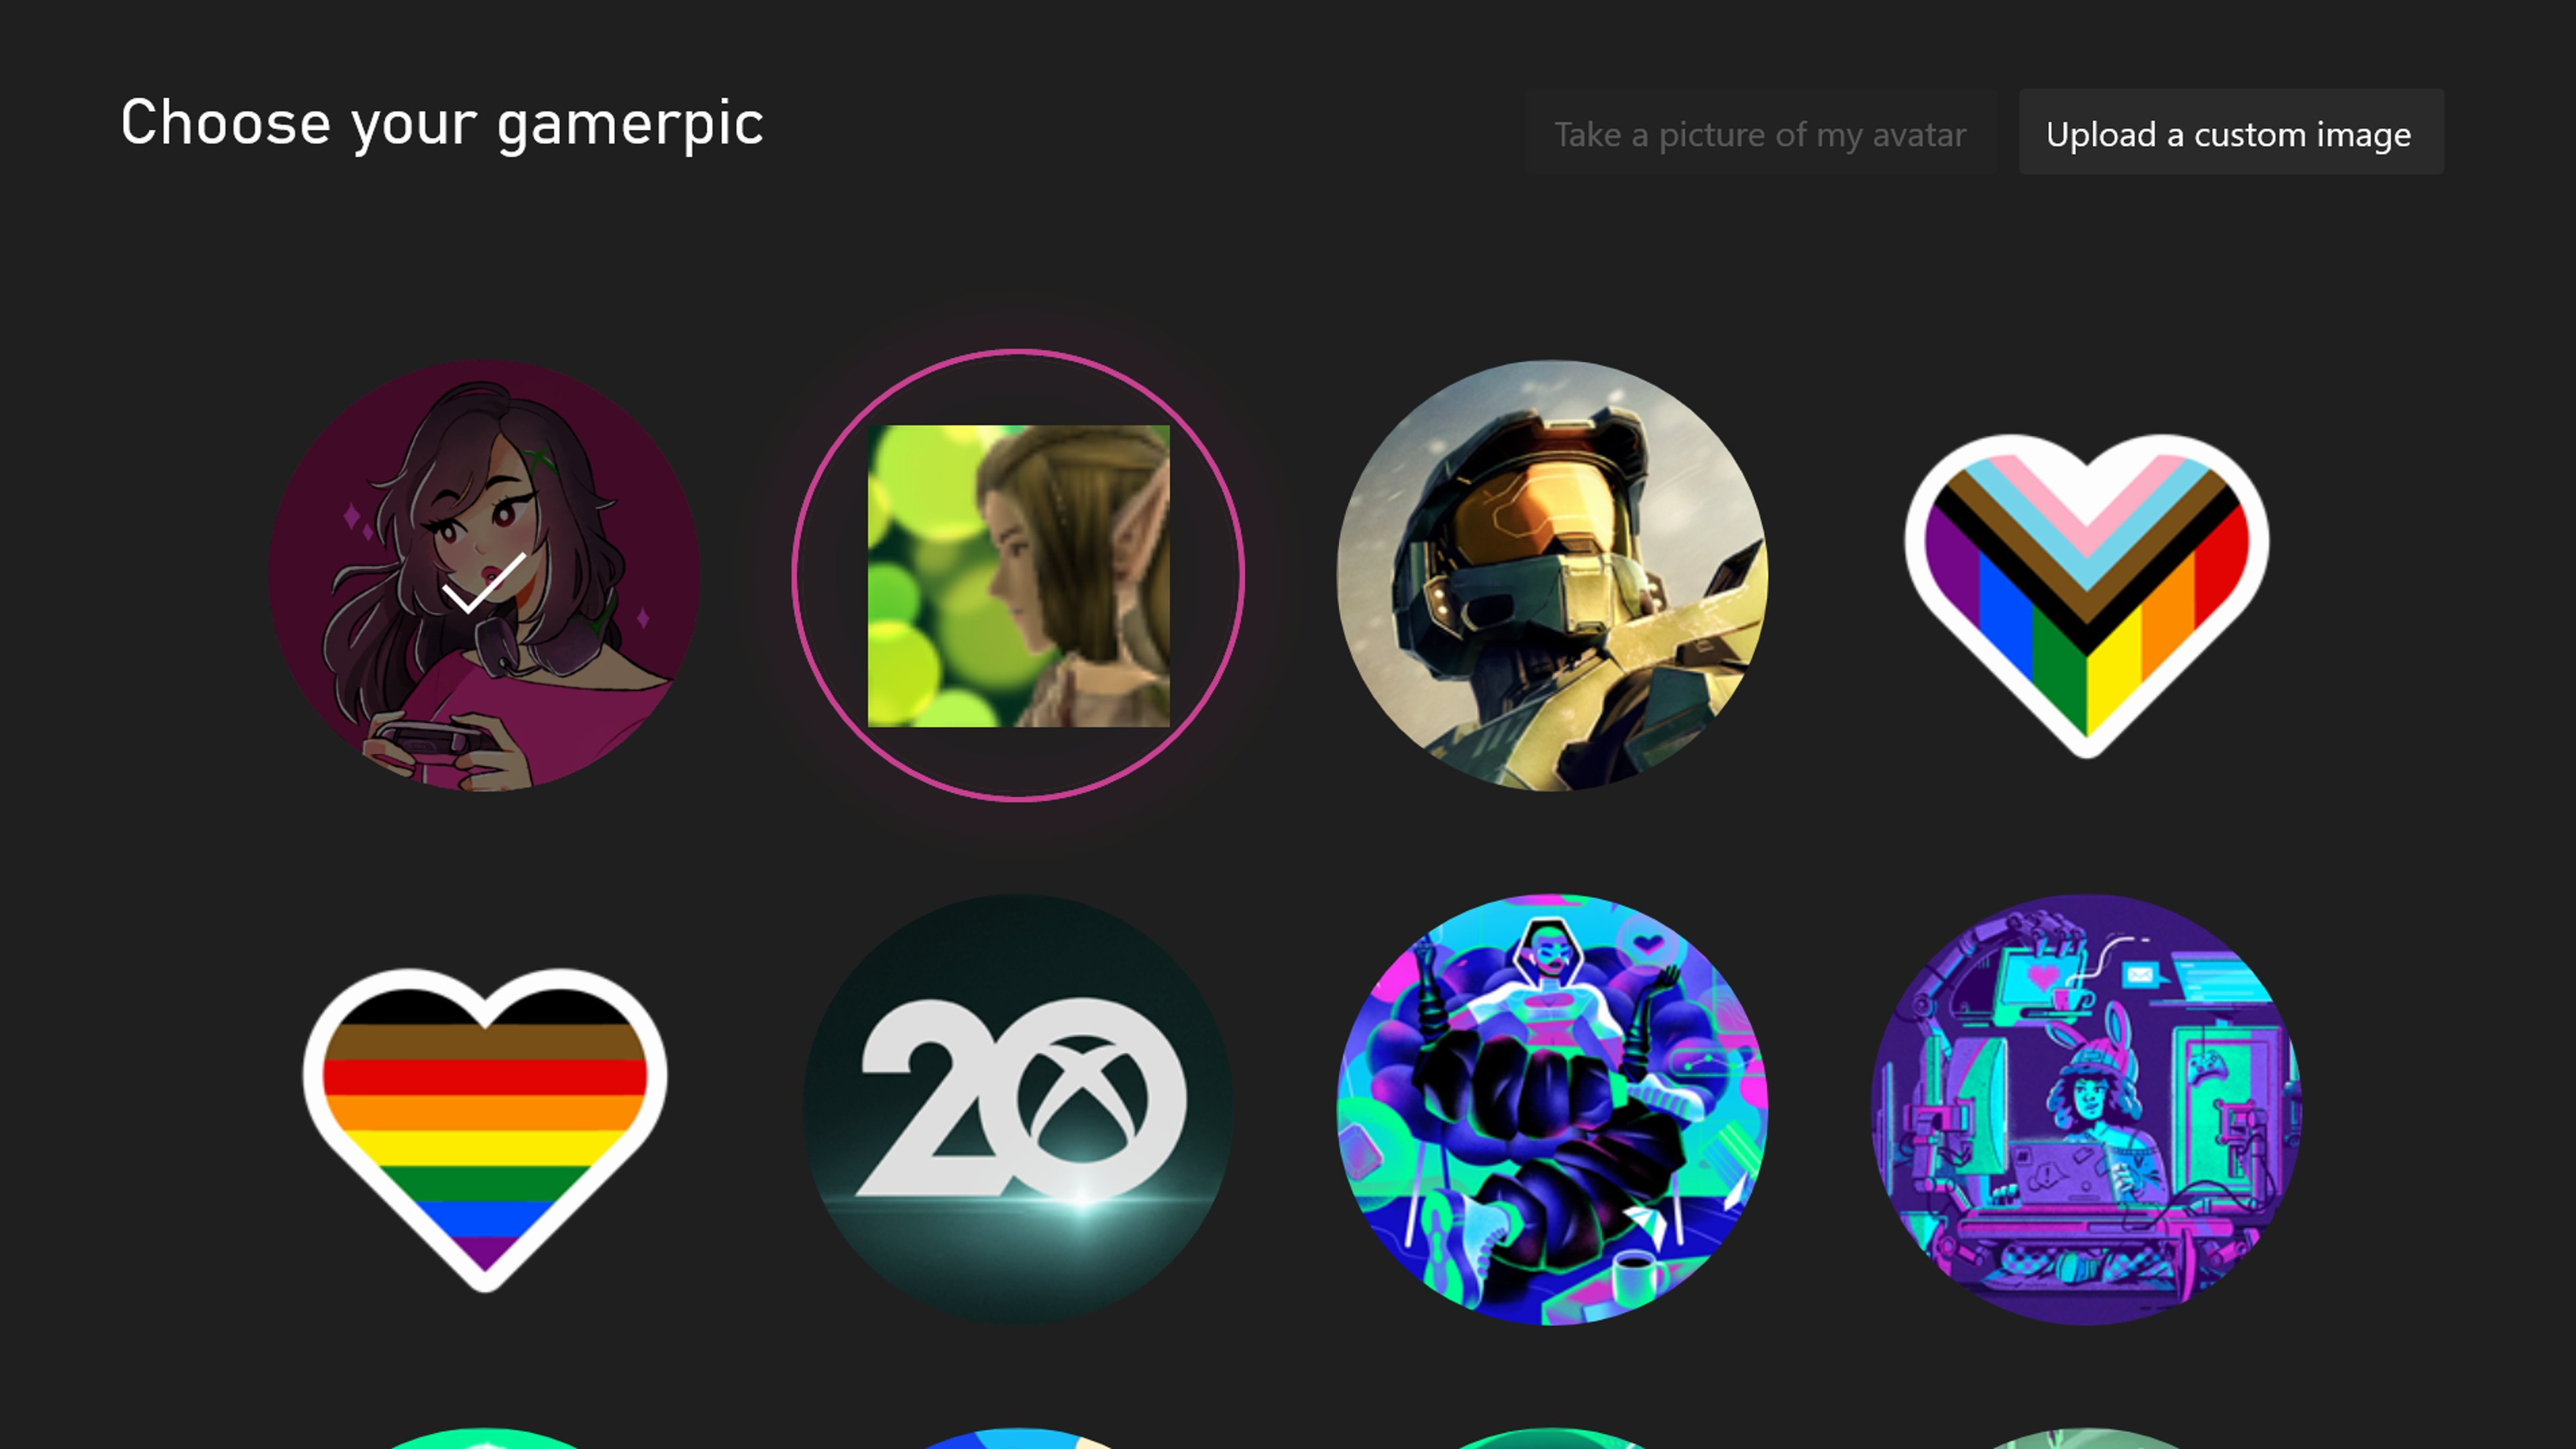 Xbox Insiders' 360 gamerpics now display properly on modern consoles